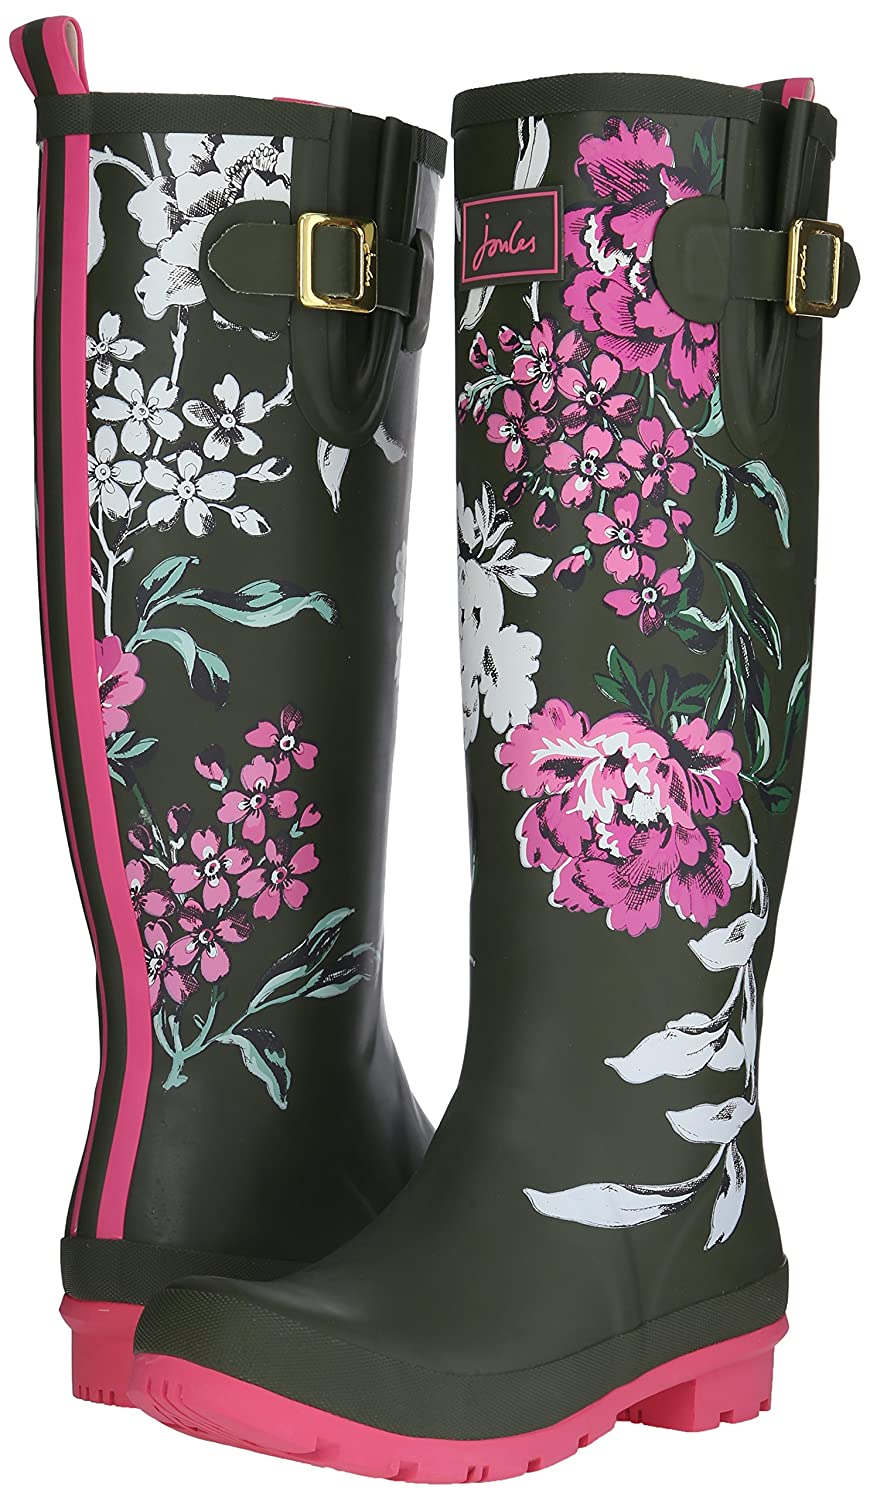 Joules Women's Welly Print Rain Boot B015PIFG32 Floral 7 B(M) US|Grape Leaf Floral B015PIFG32 1dc851